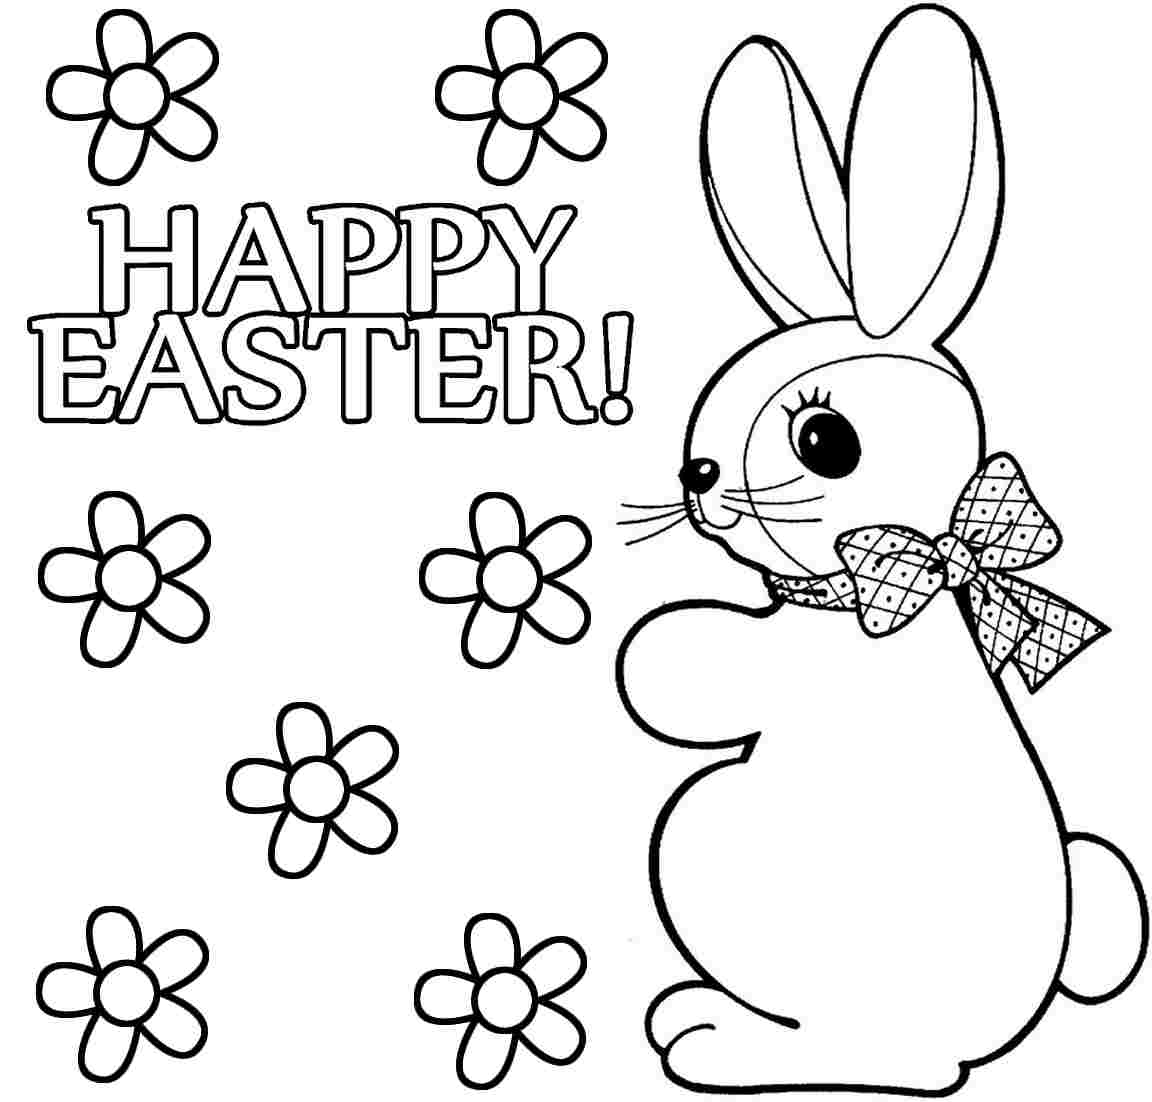 Easter bunny coloring pages to